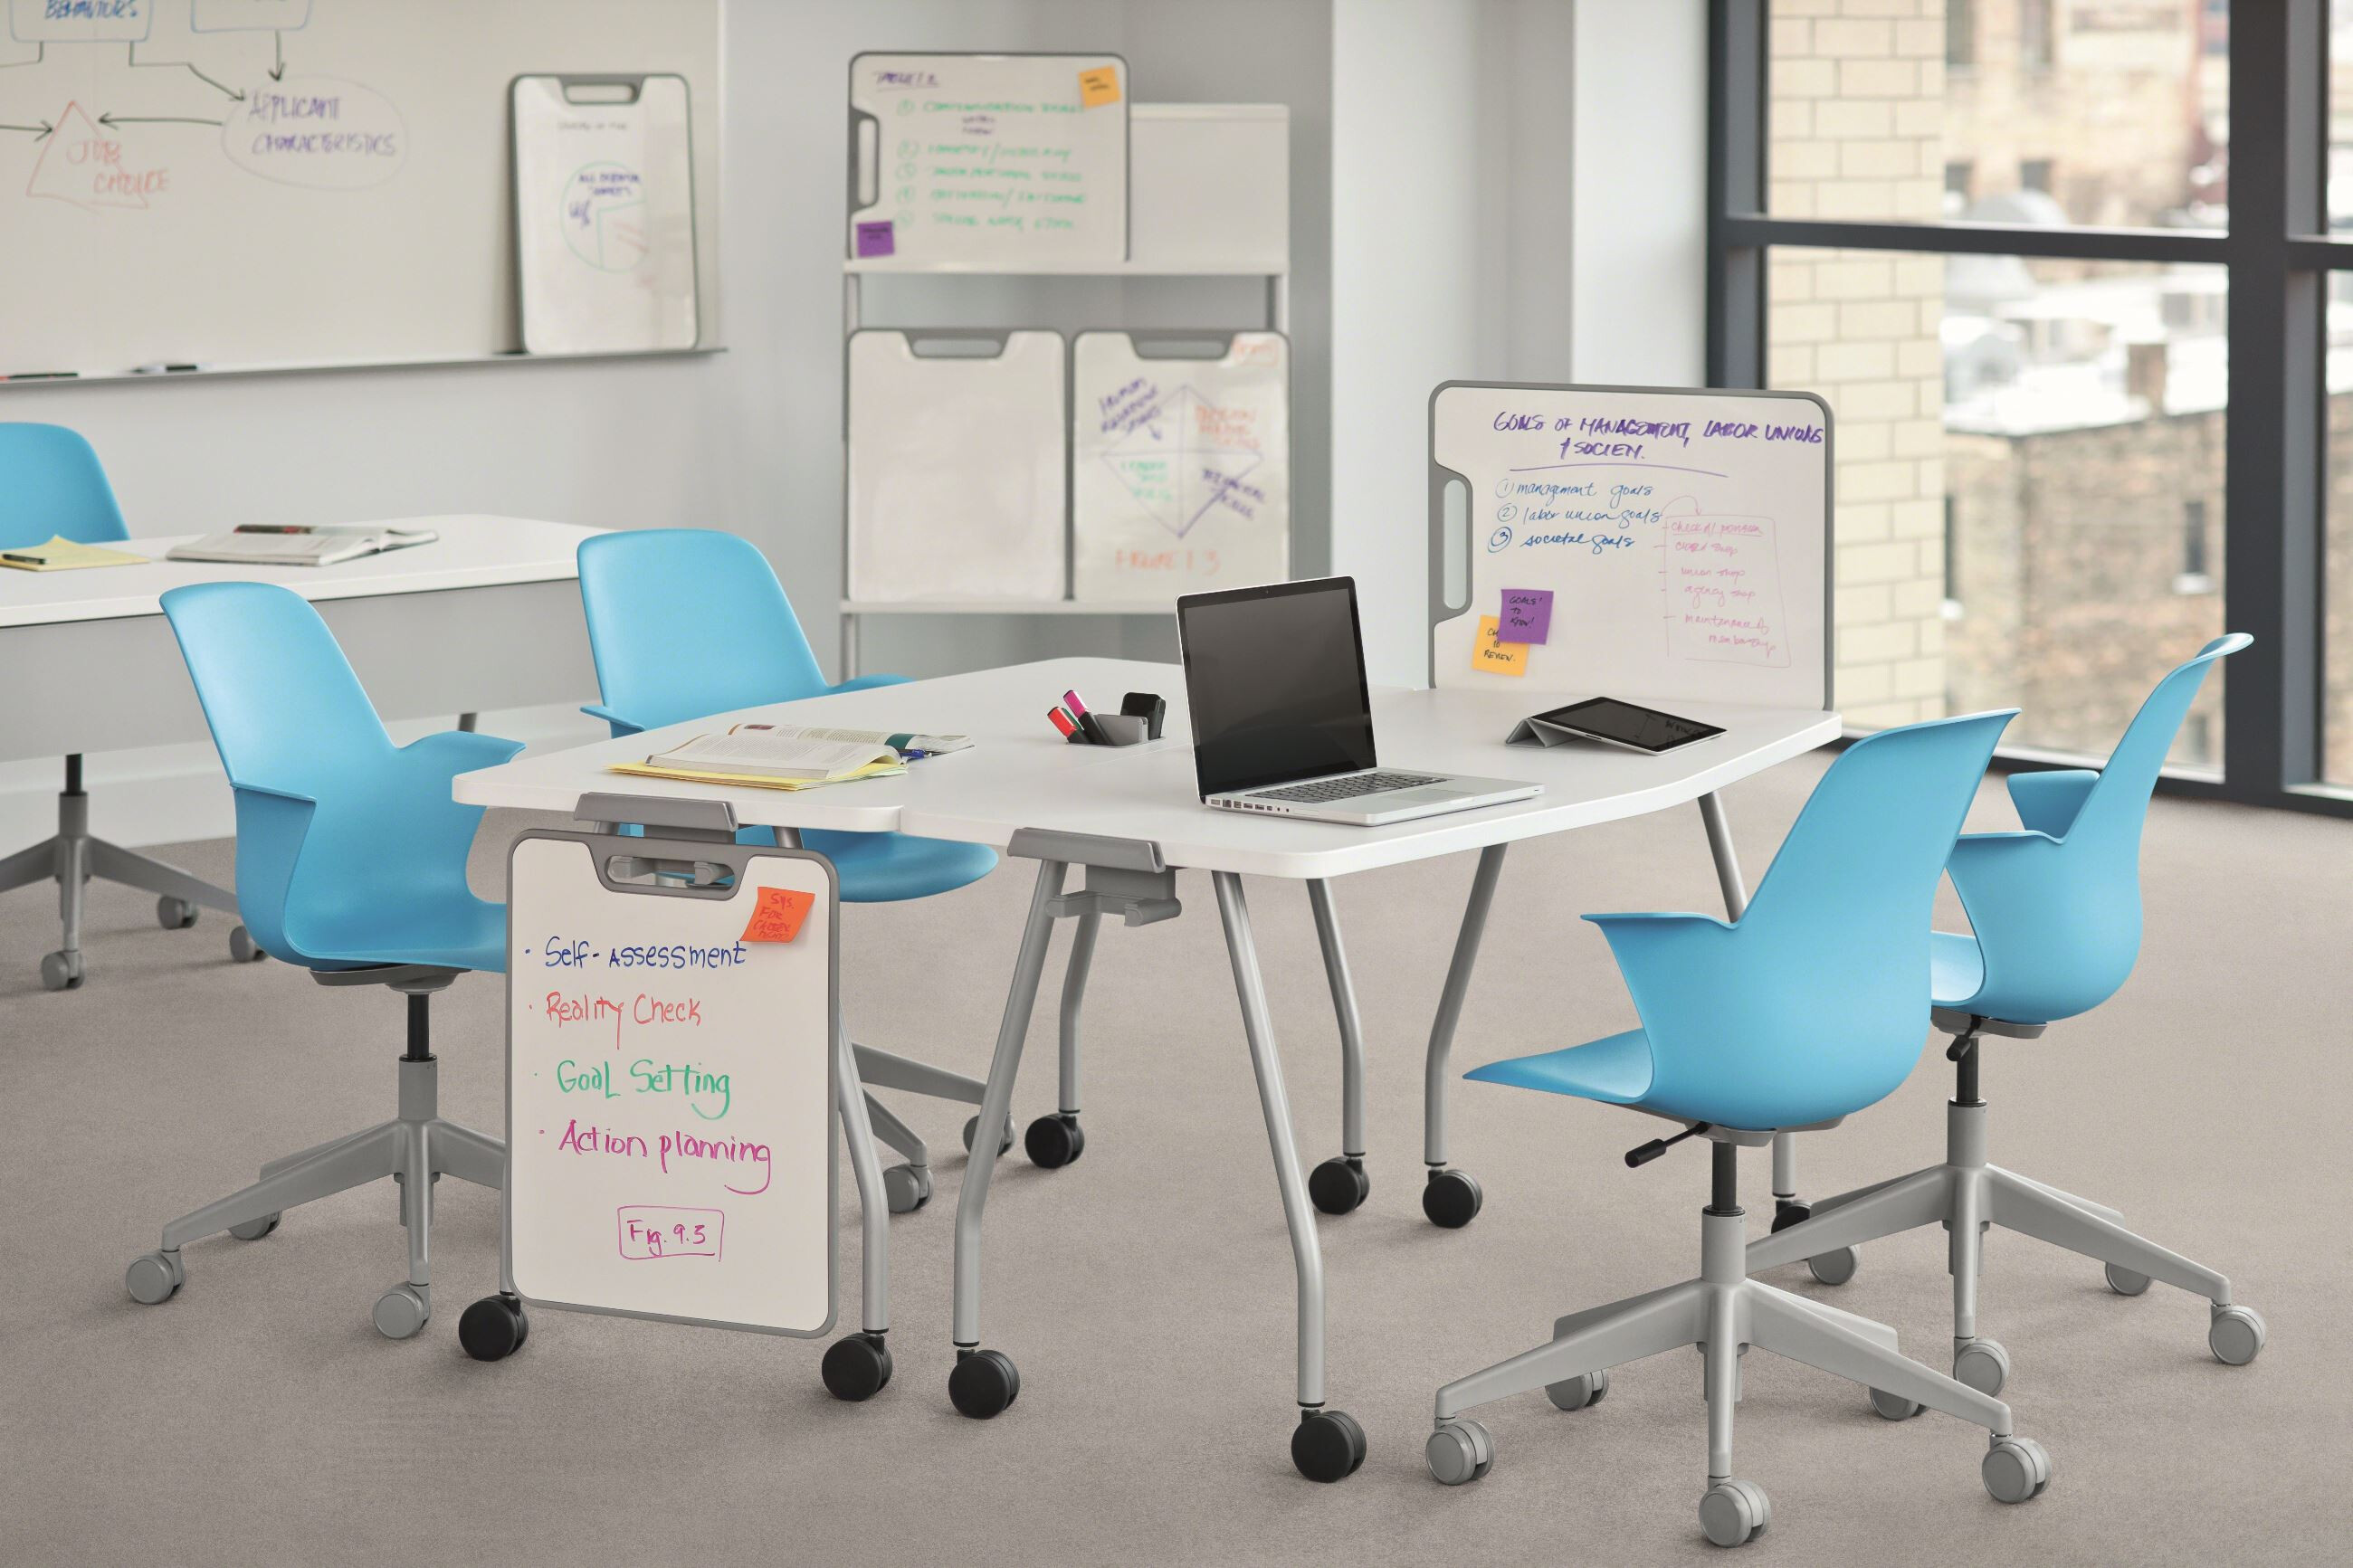 Verb table and node chairs